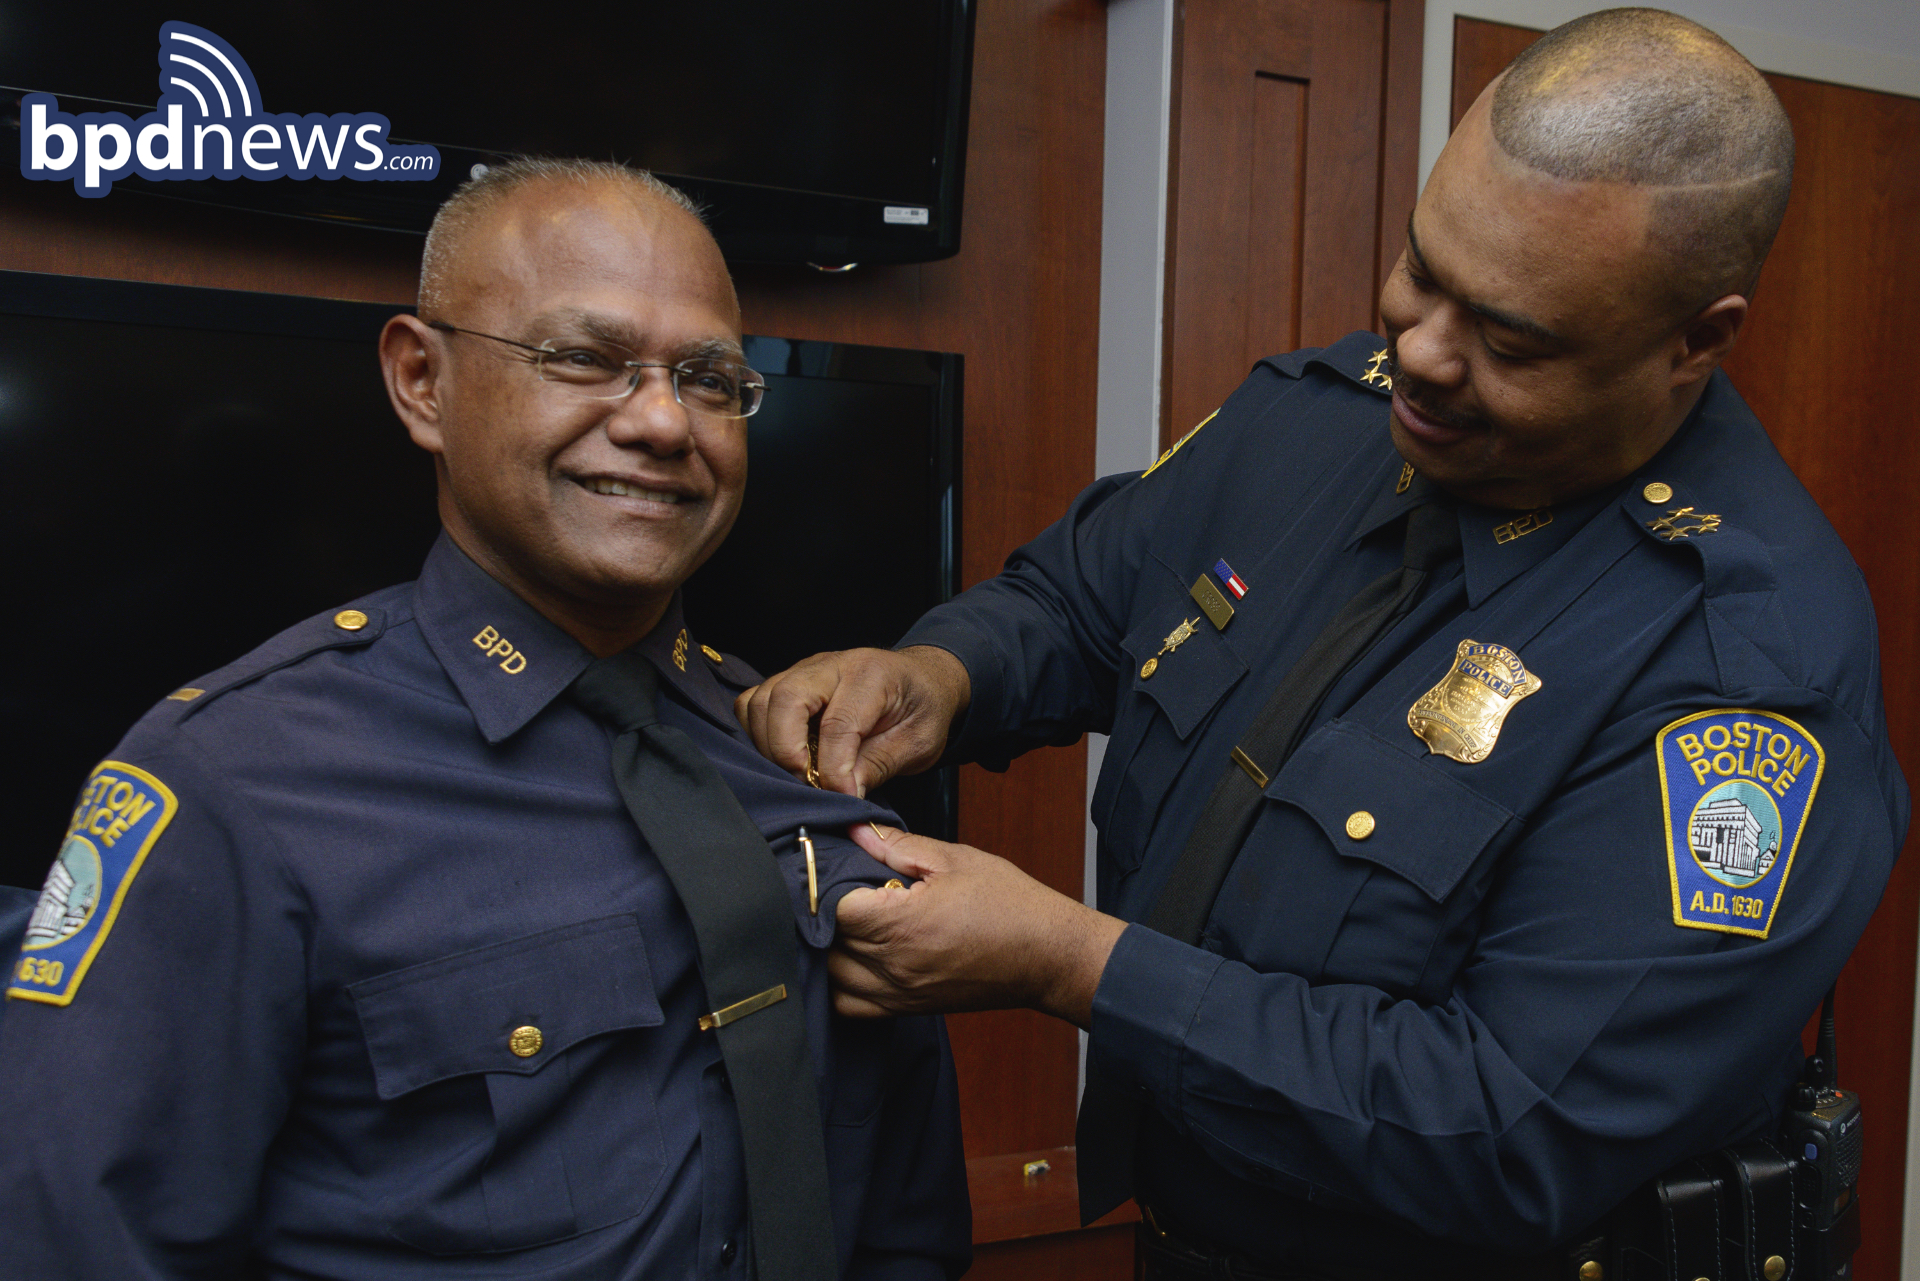 Captain Hosein receives his Captain's BAdge from Chief Gross